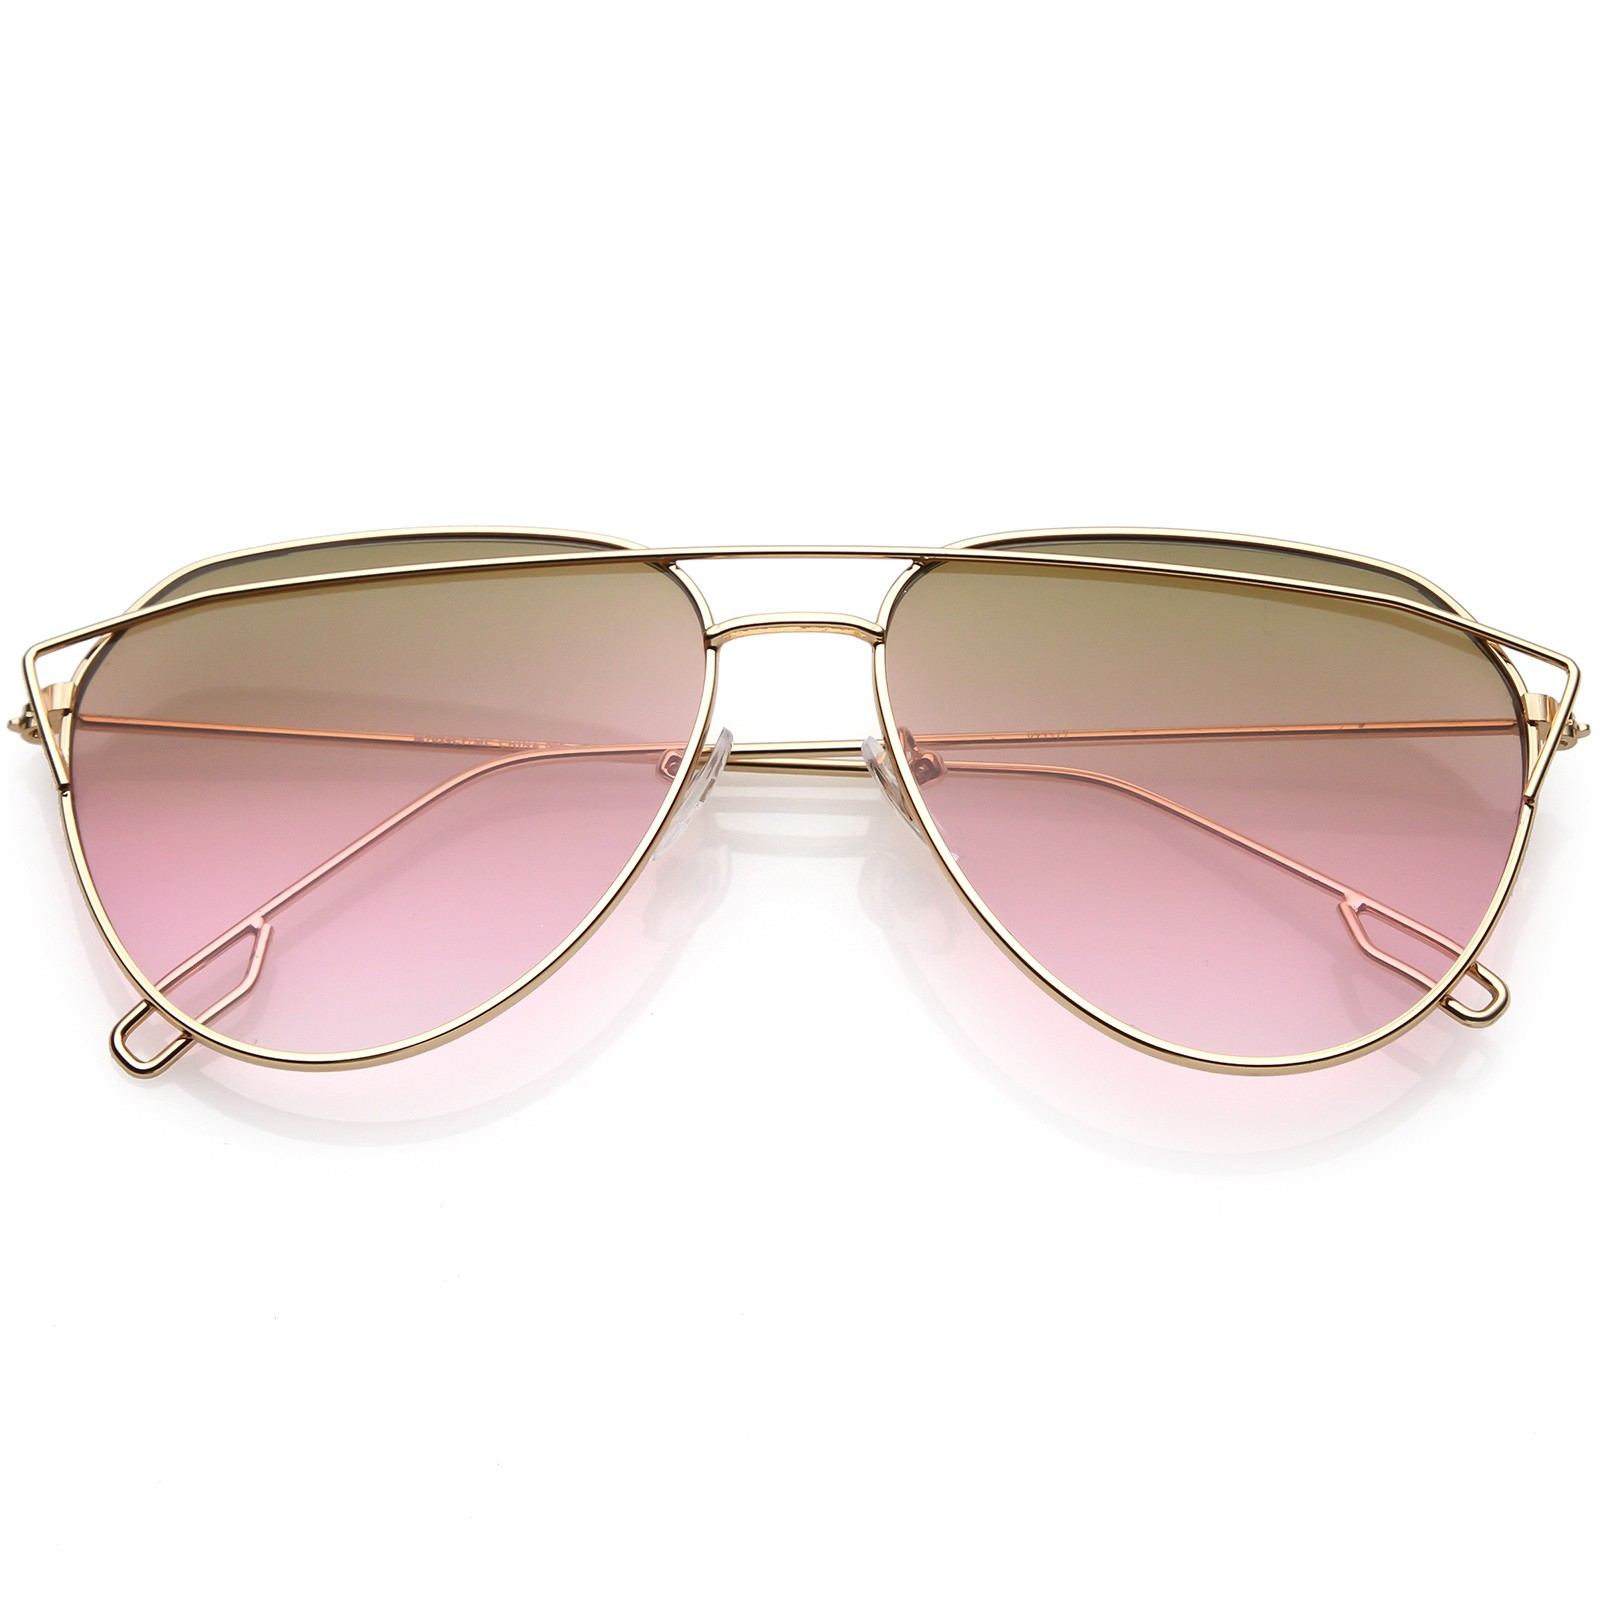 892b558ed9e Womens Aviator Sunglasses Metal Crossbar Multicolor Gradient Flat Lens  58mm. 100% UV Protection The Most Fashionable Completely Free Shipping